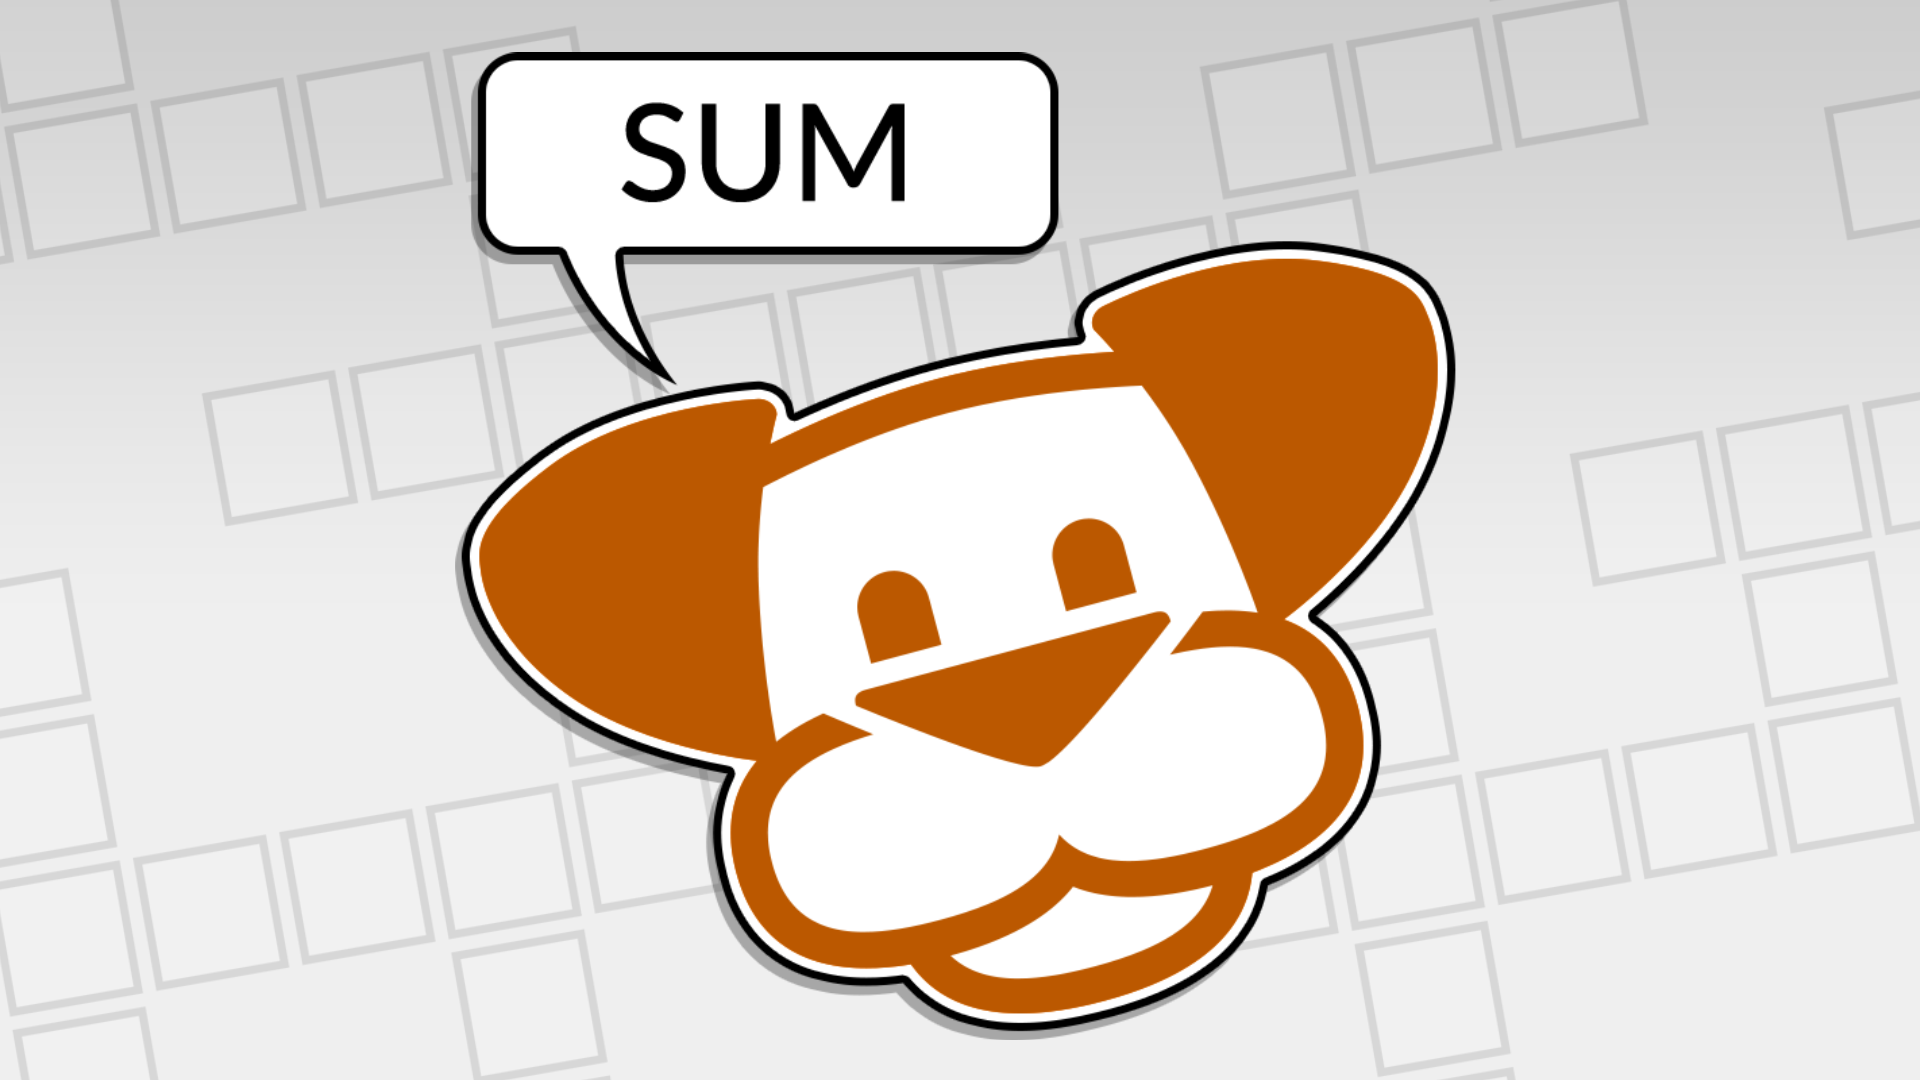 Icon for Sum-thing wonderful